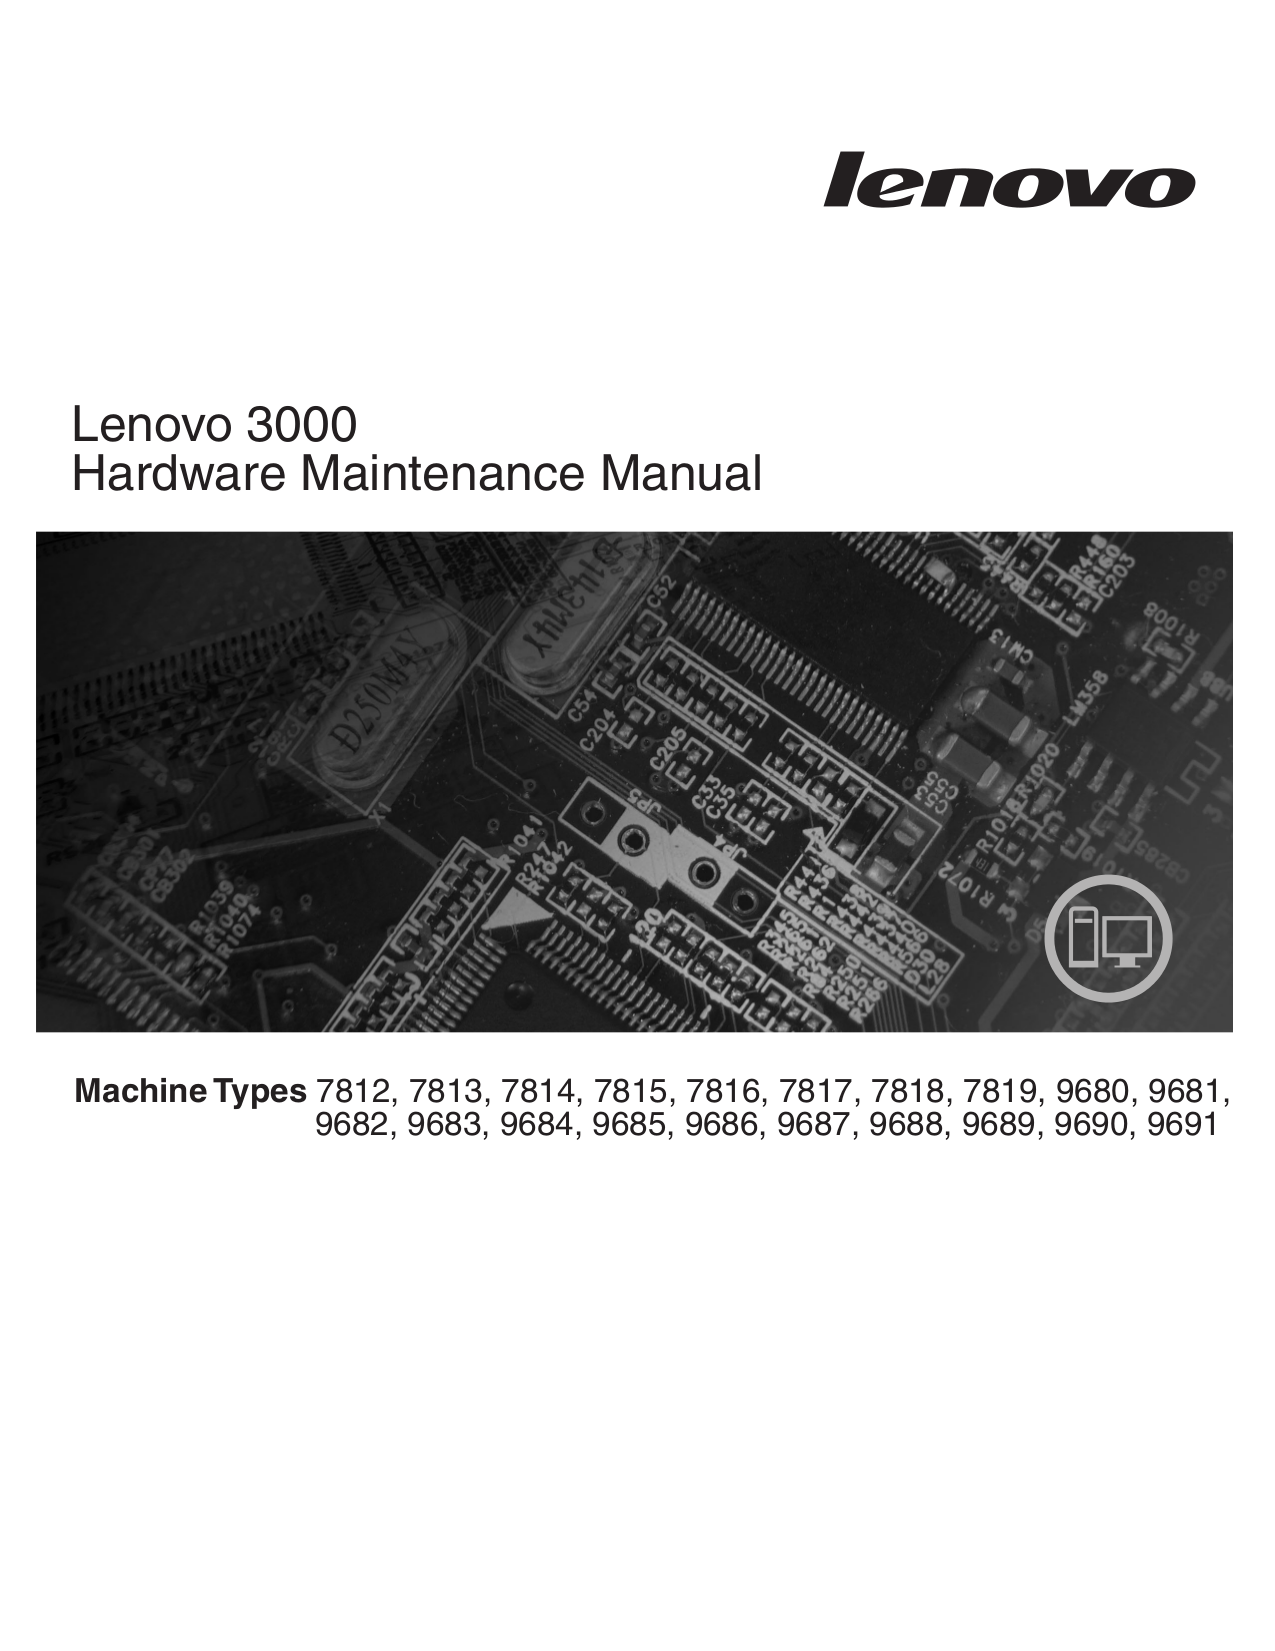 pdf for Lenovo Desktop 3000 J200 9691 manual